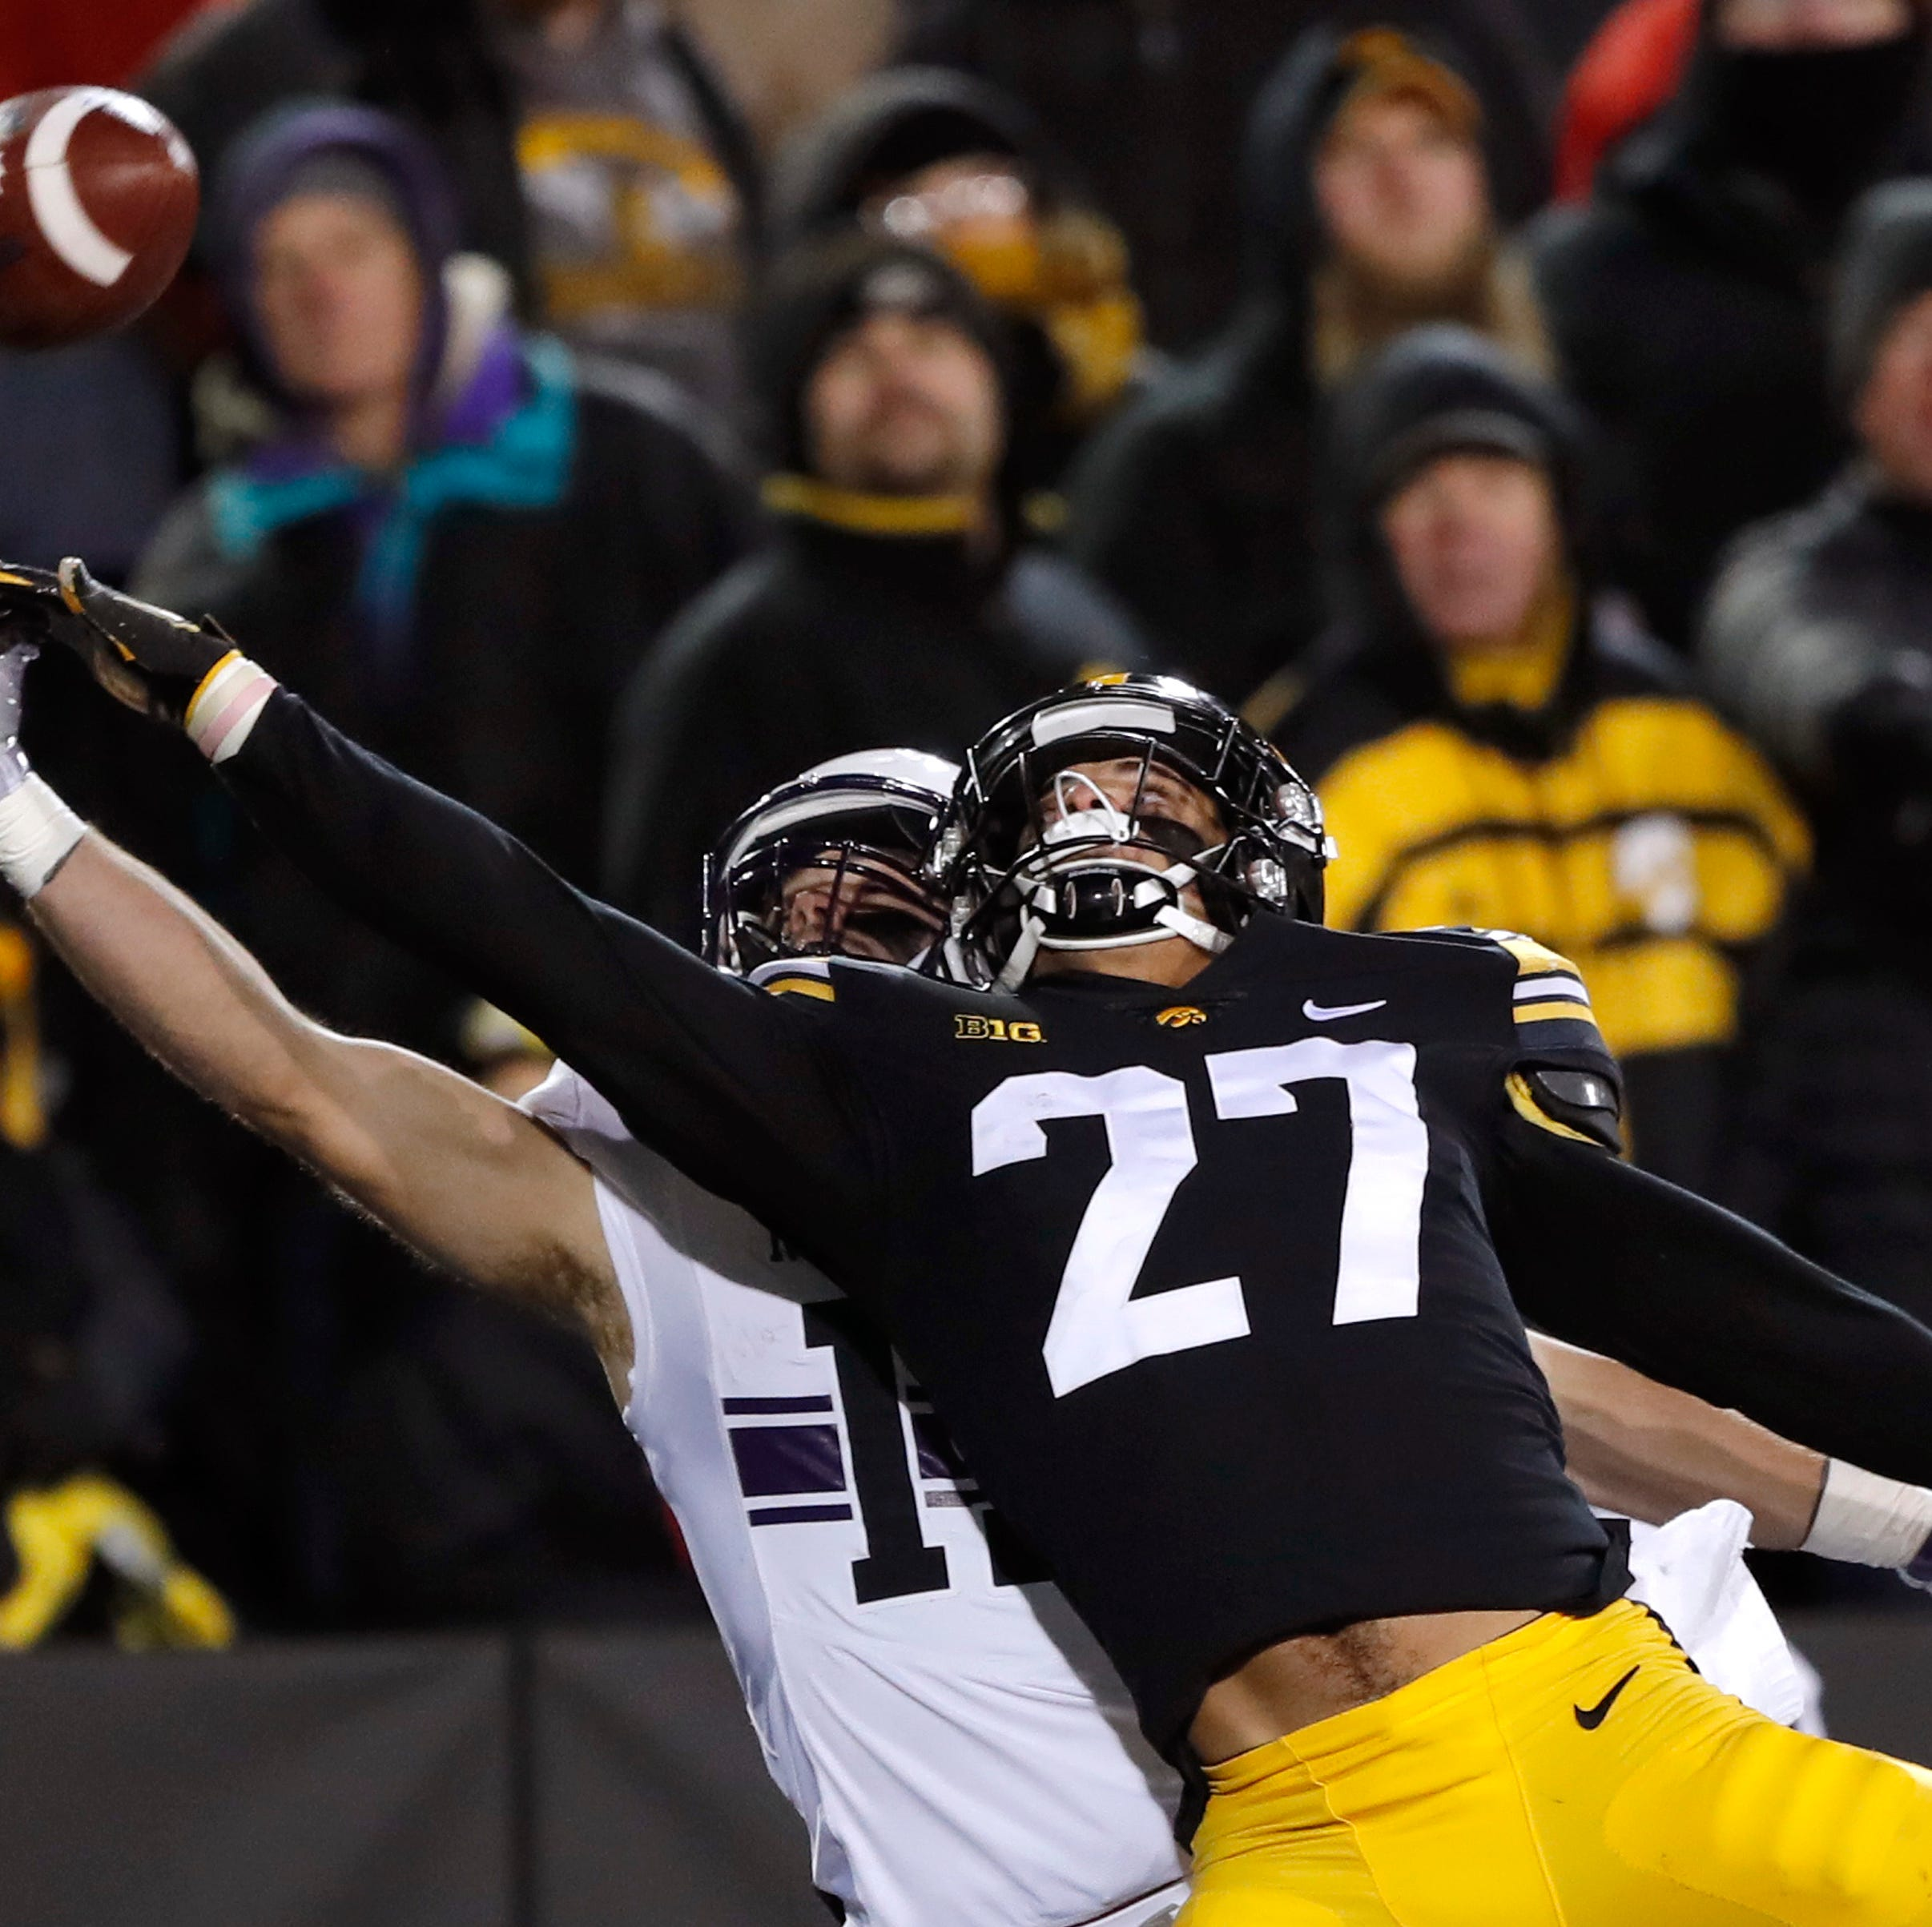 NFL Draft: Tennessee Titans select Iowa defensive back Amani Hooker in fourth round